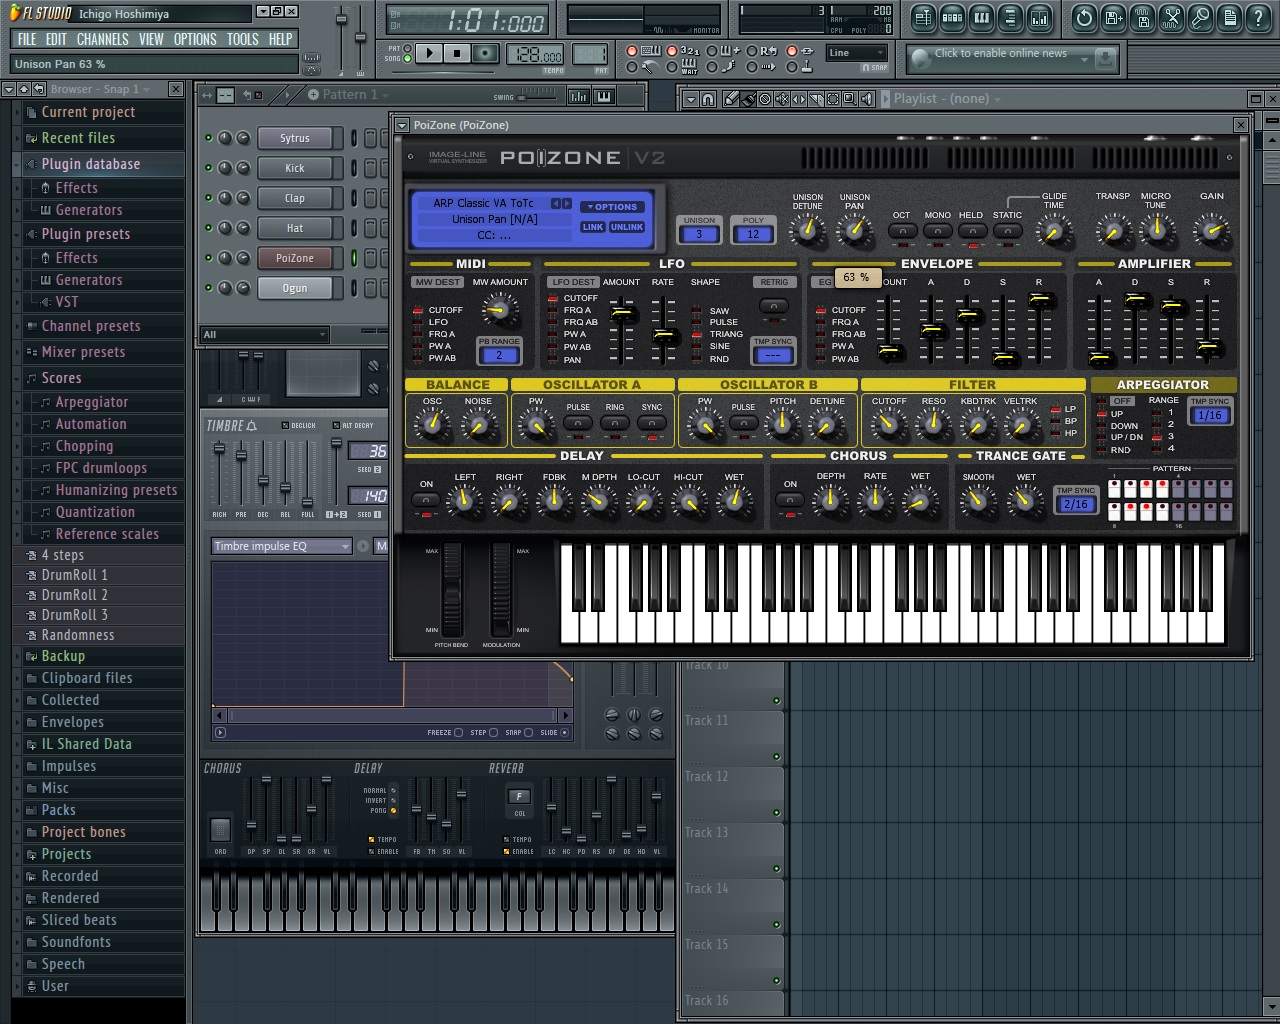 Fruity loops studio producer edition 9 cracked version ...